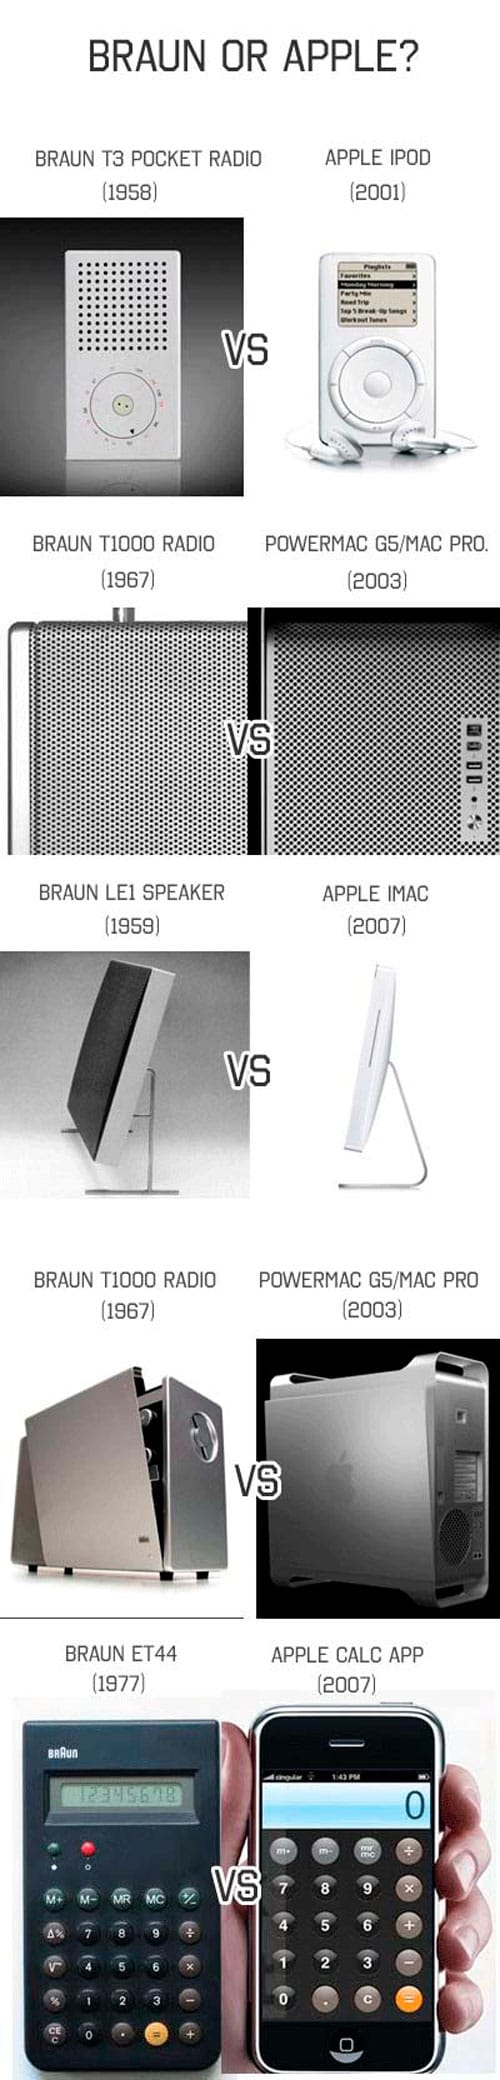 diseno-braun-vs-apple